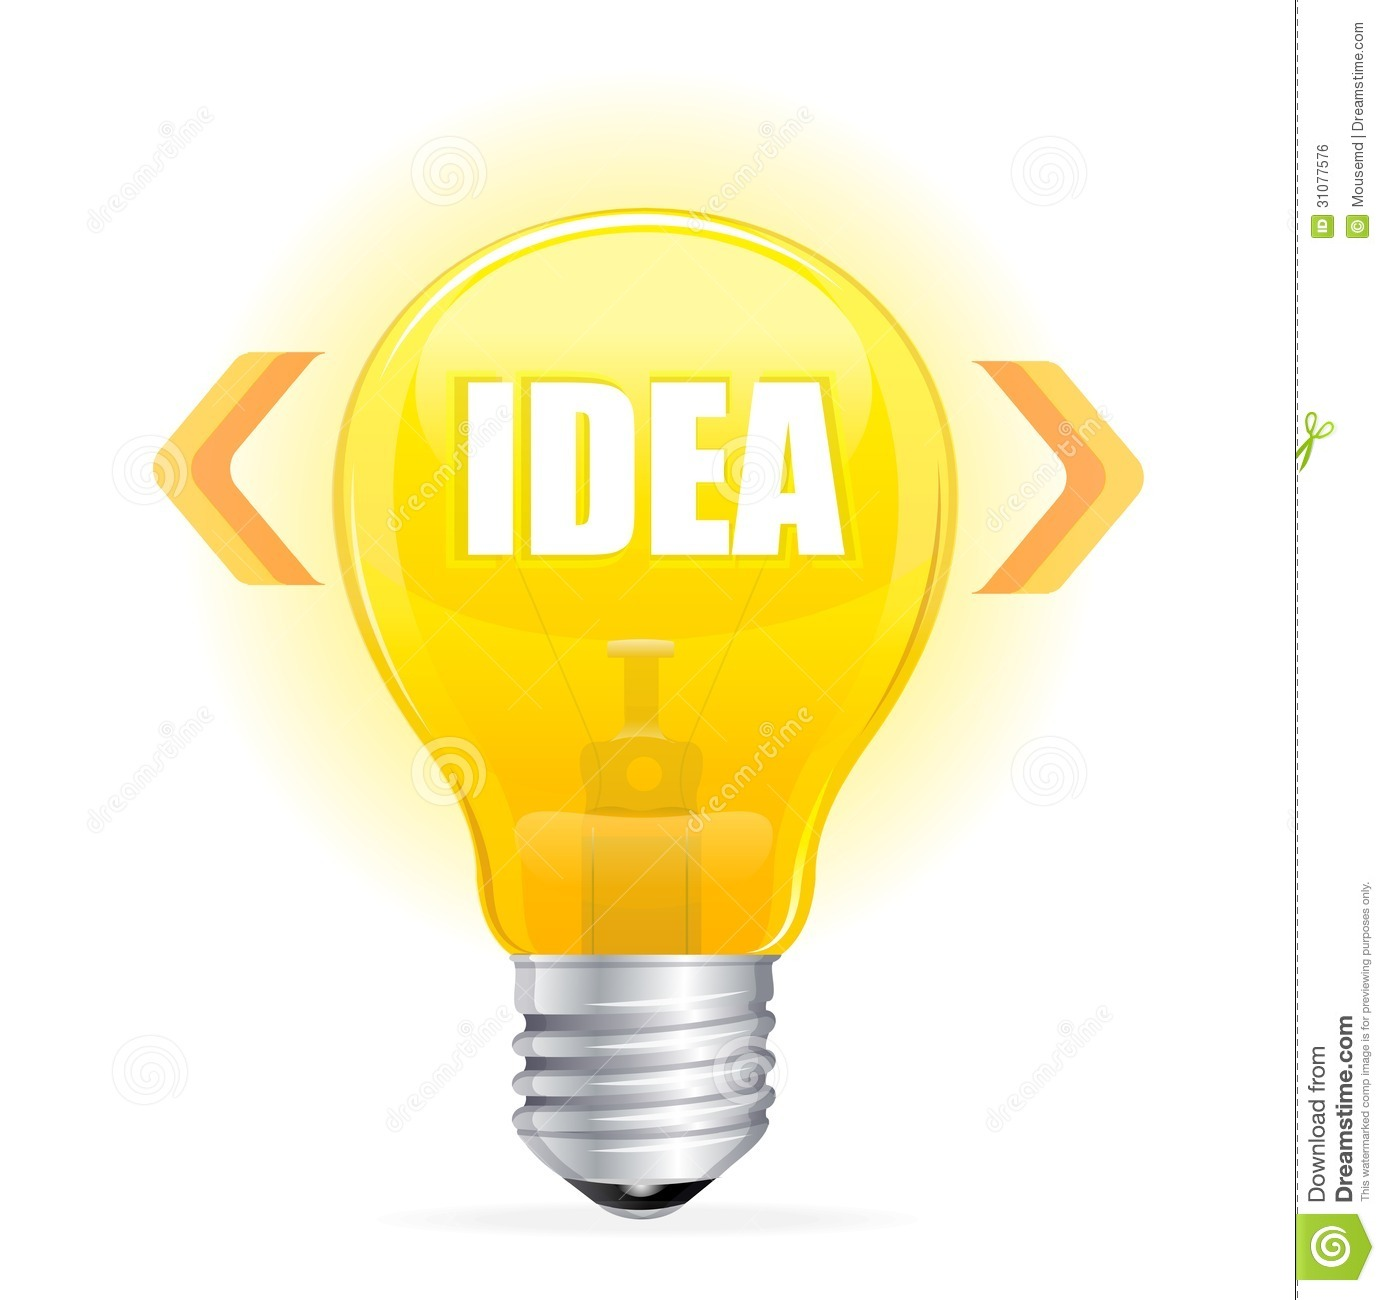 Light Bulb Idea Concept Template Royalty Free Stock Image - Image ...